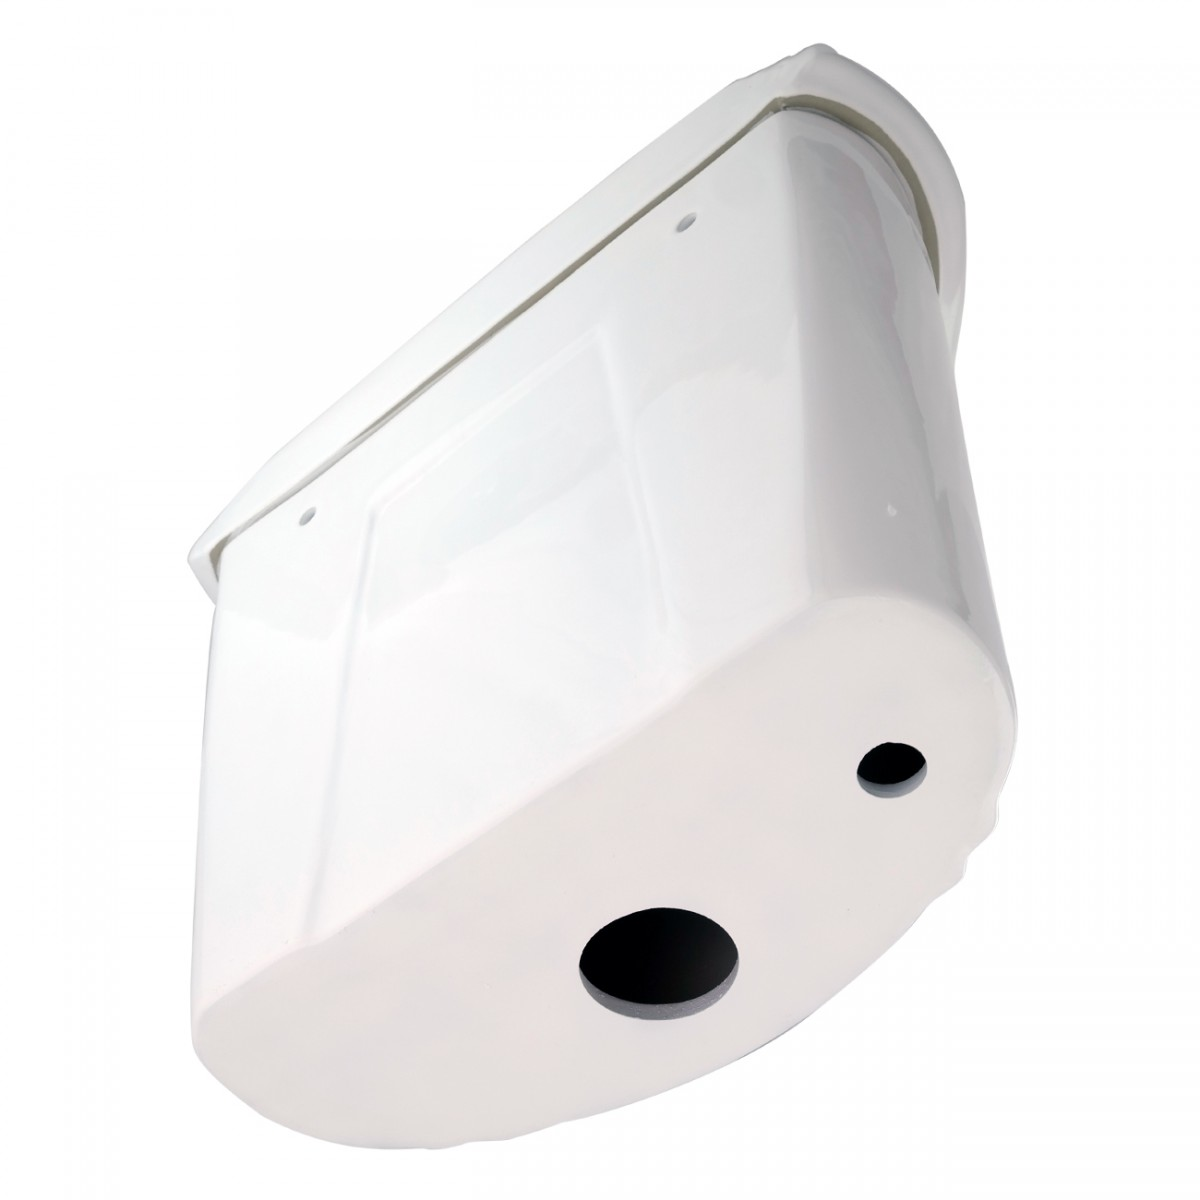 Renovators Supply White High Tank Toilet Round Bowl Rust Resistant Brass LPipe High Tank Pull Chain Toilets High Tank Toilet with Round Bowl Pull Chain Toilets